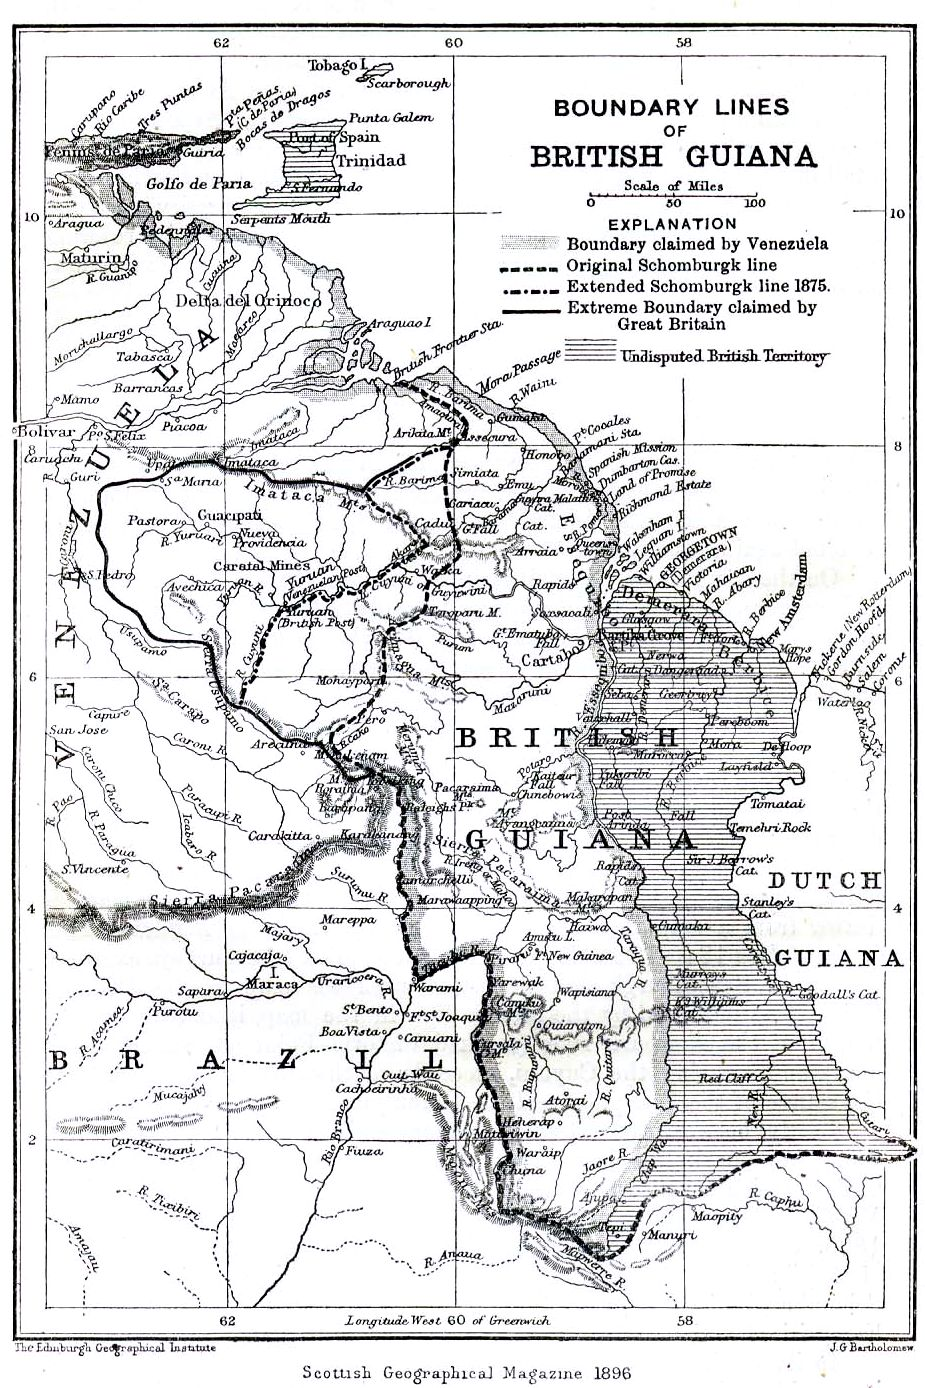 boundary_lines_of_british_guiana_1896.jpg